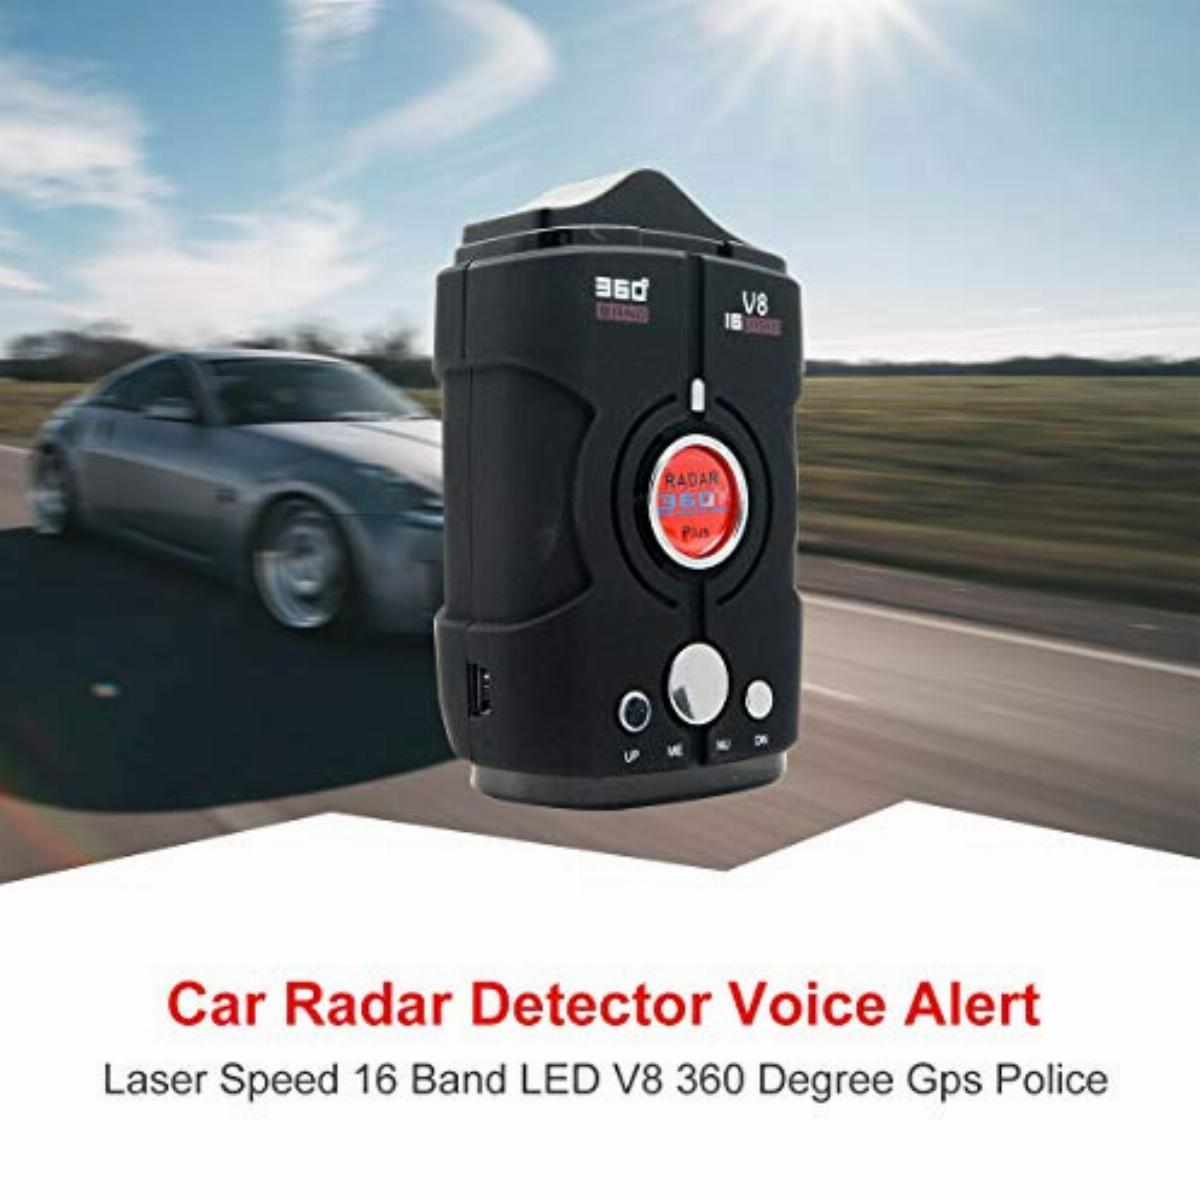 City//Highway Mode Radar Detectors for Cars,MASO Laser Radar Detector with 360 Degree Detection Voice Alert and Speed Alarm System